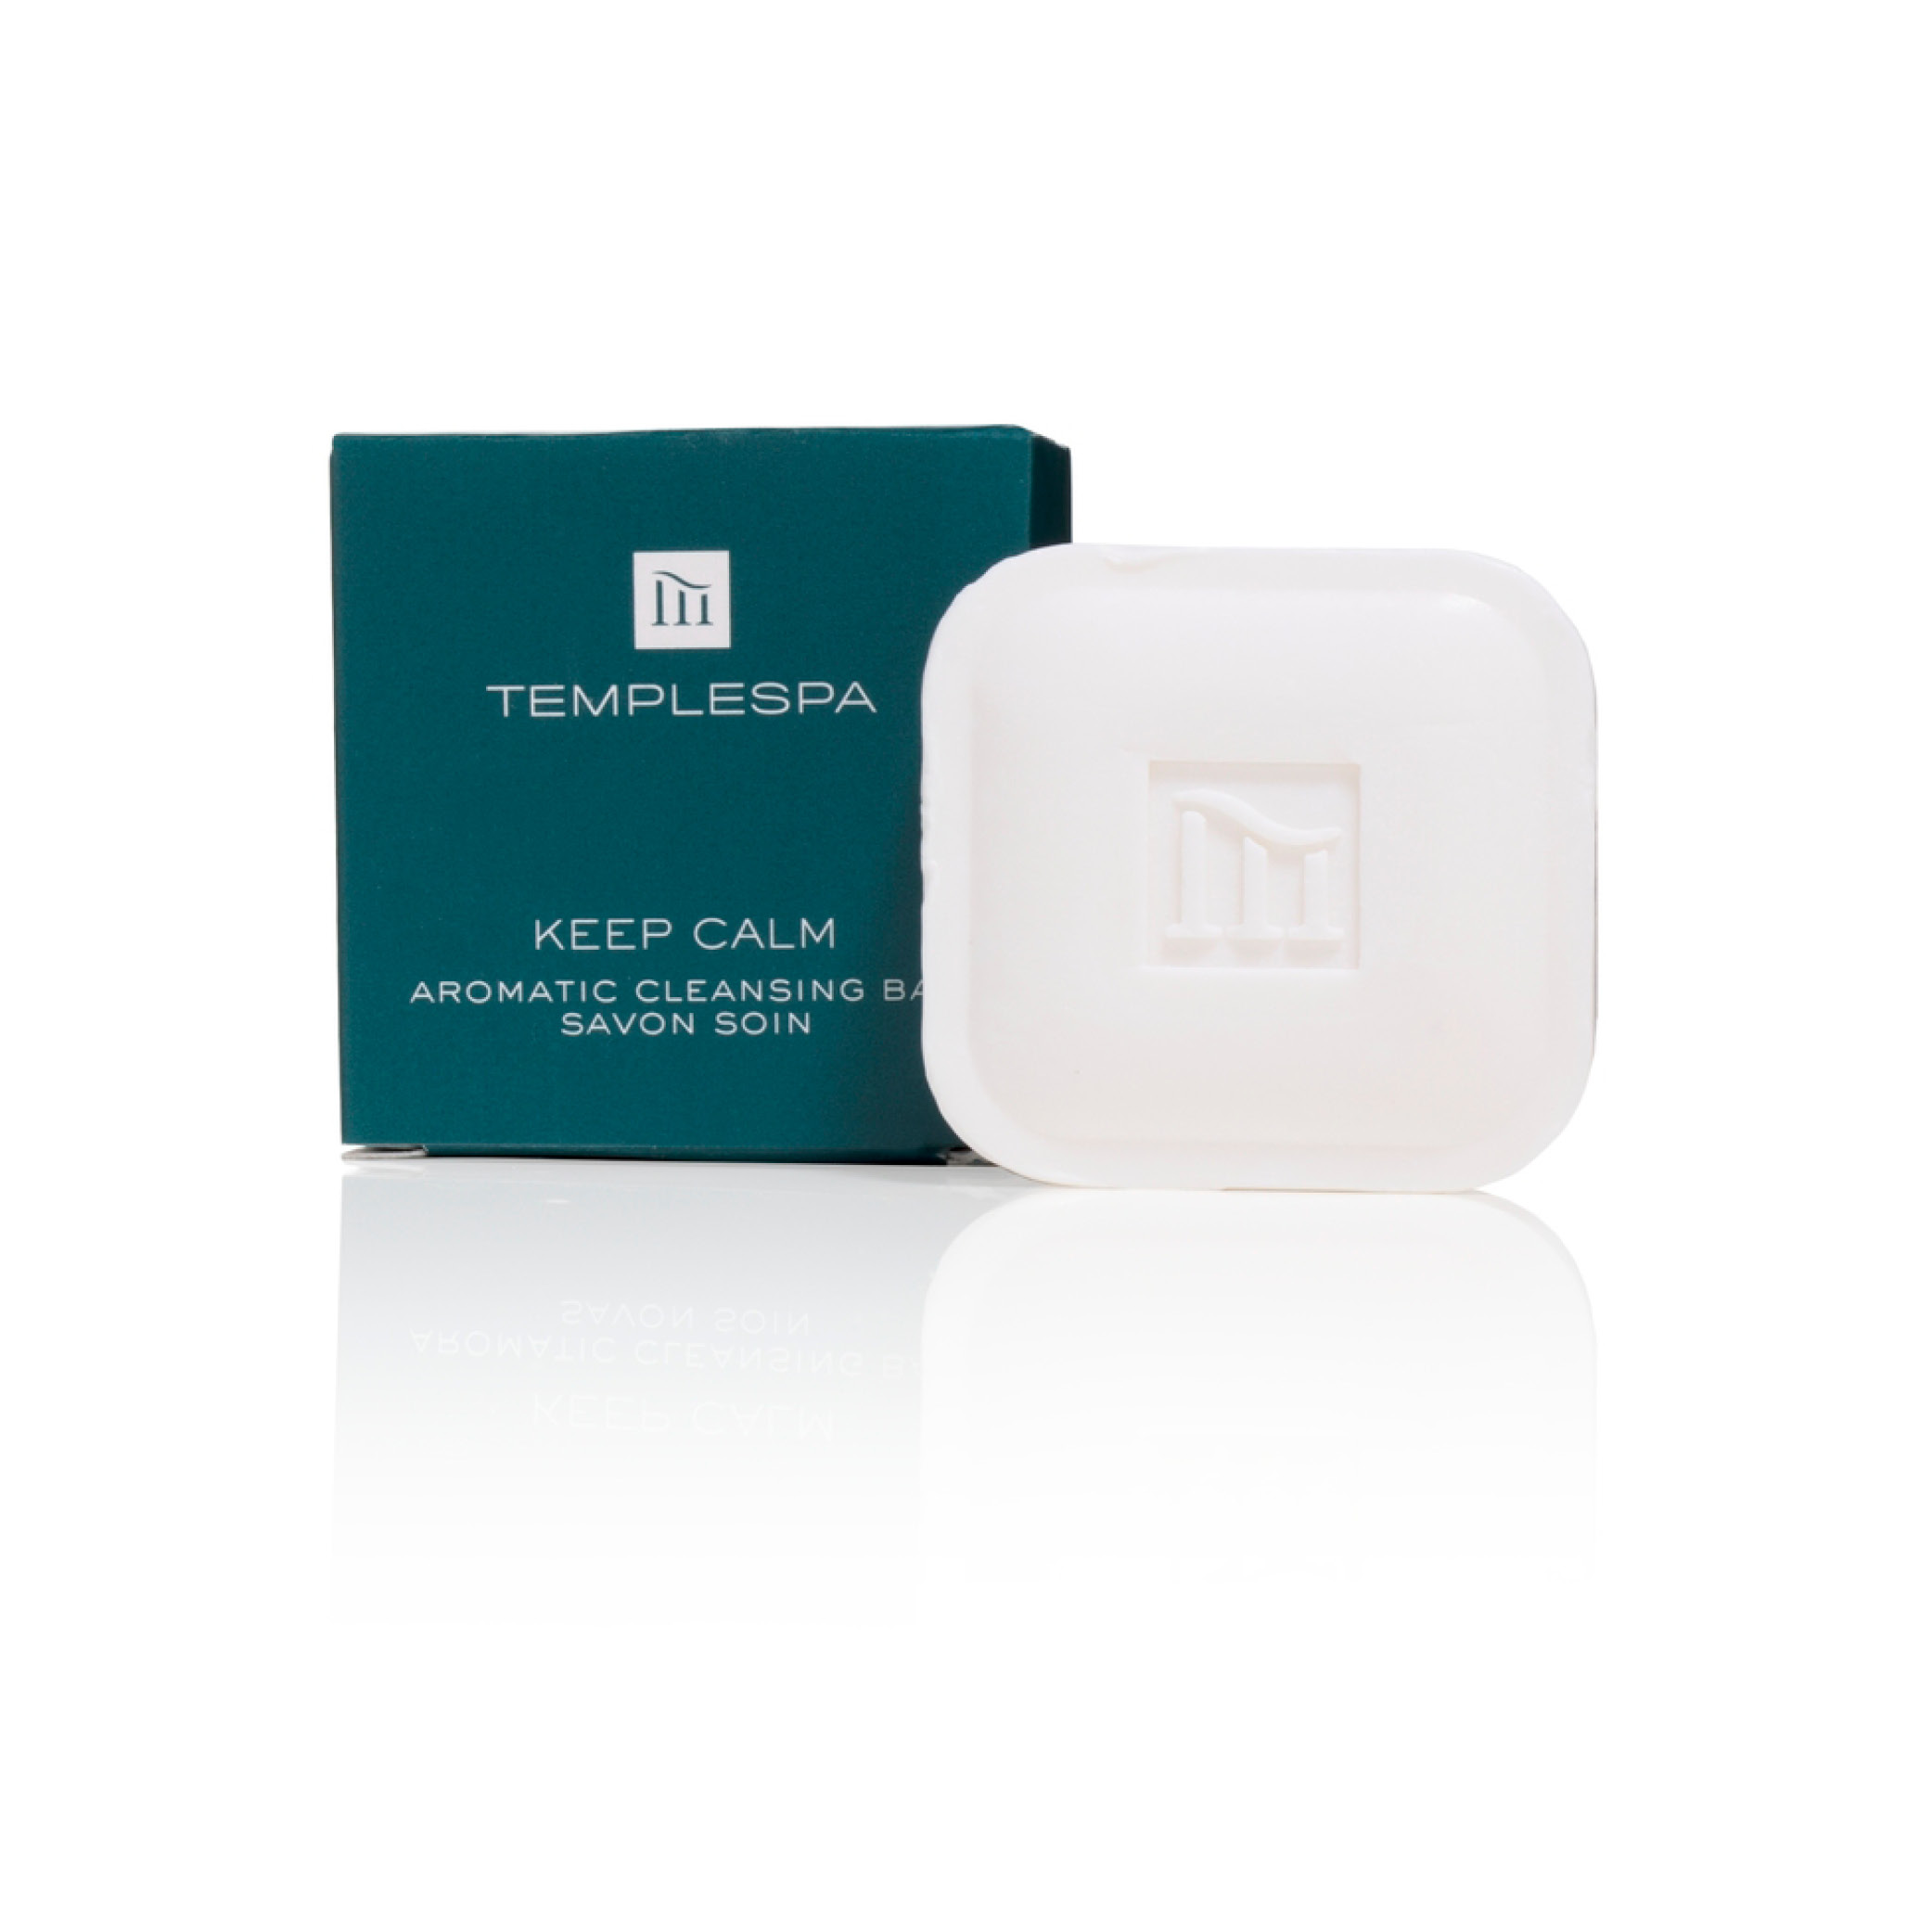 Temple Spa 40g Aromatic Soap